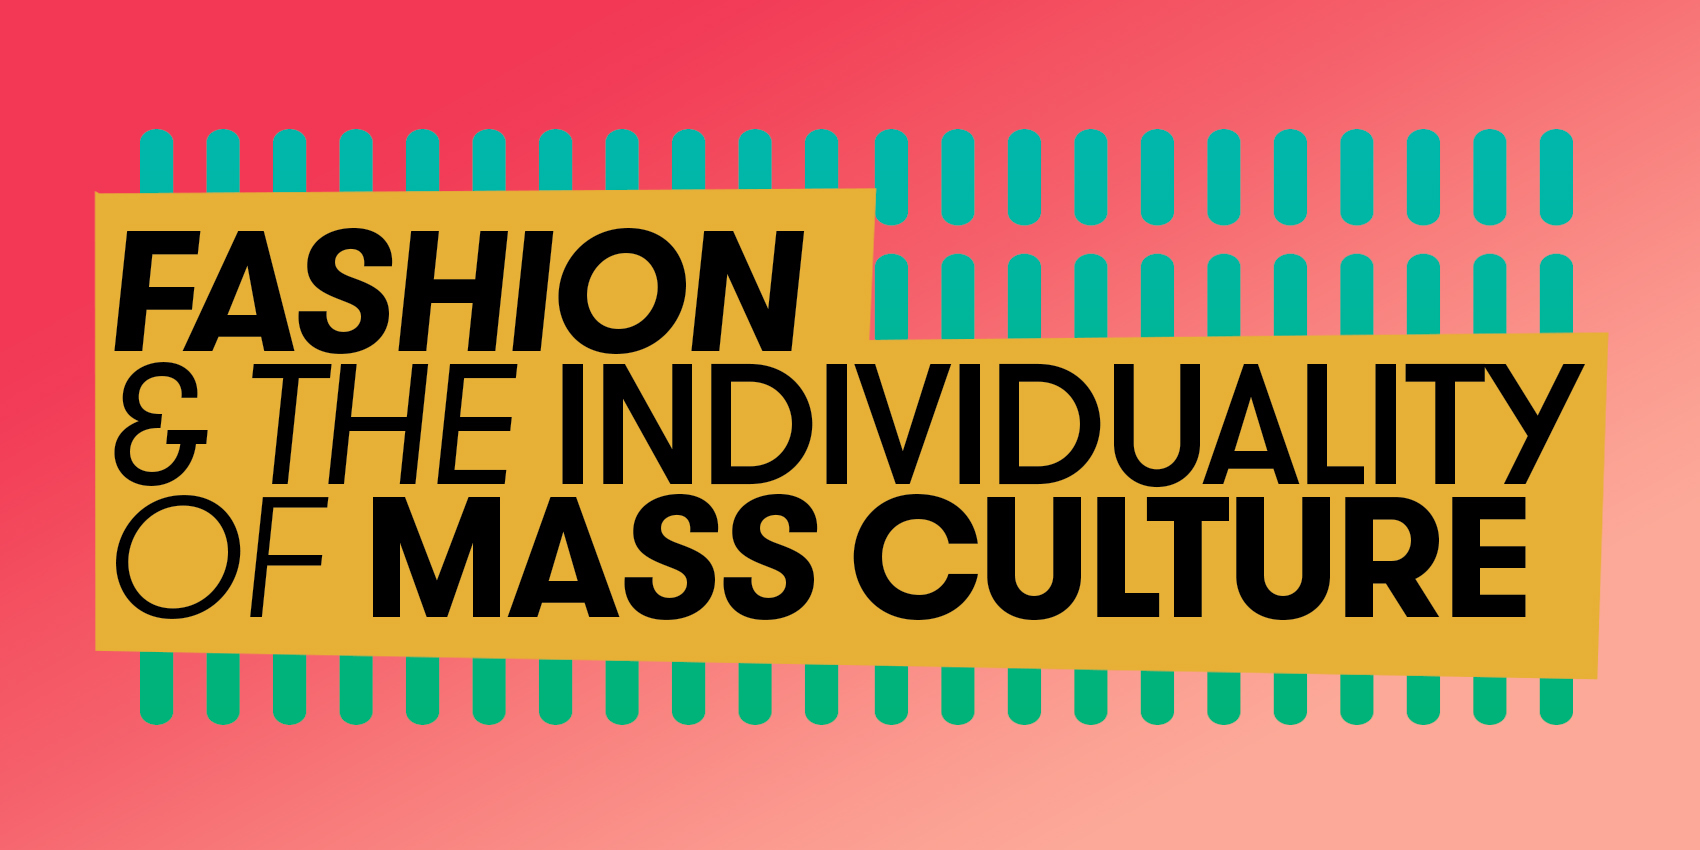 Fashion and the individuality of mass culture - Sosiologforeningen Rogaland